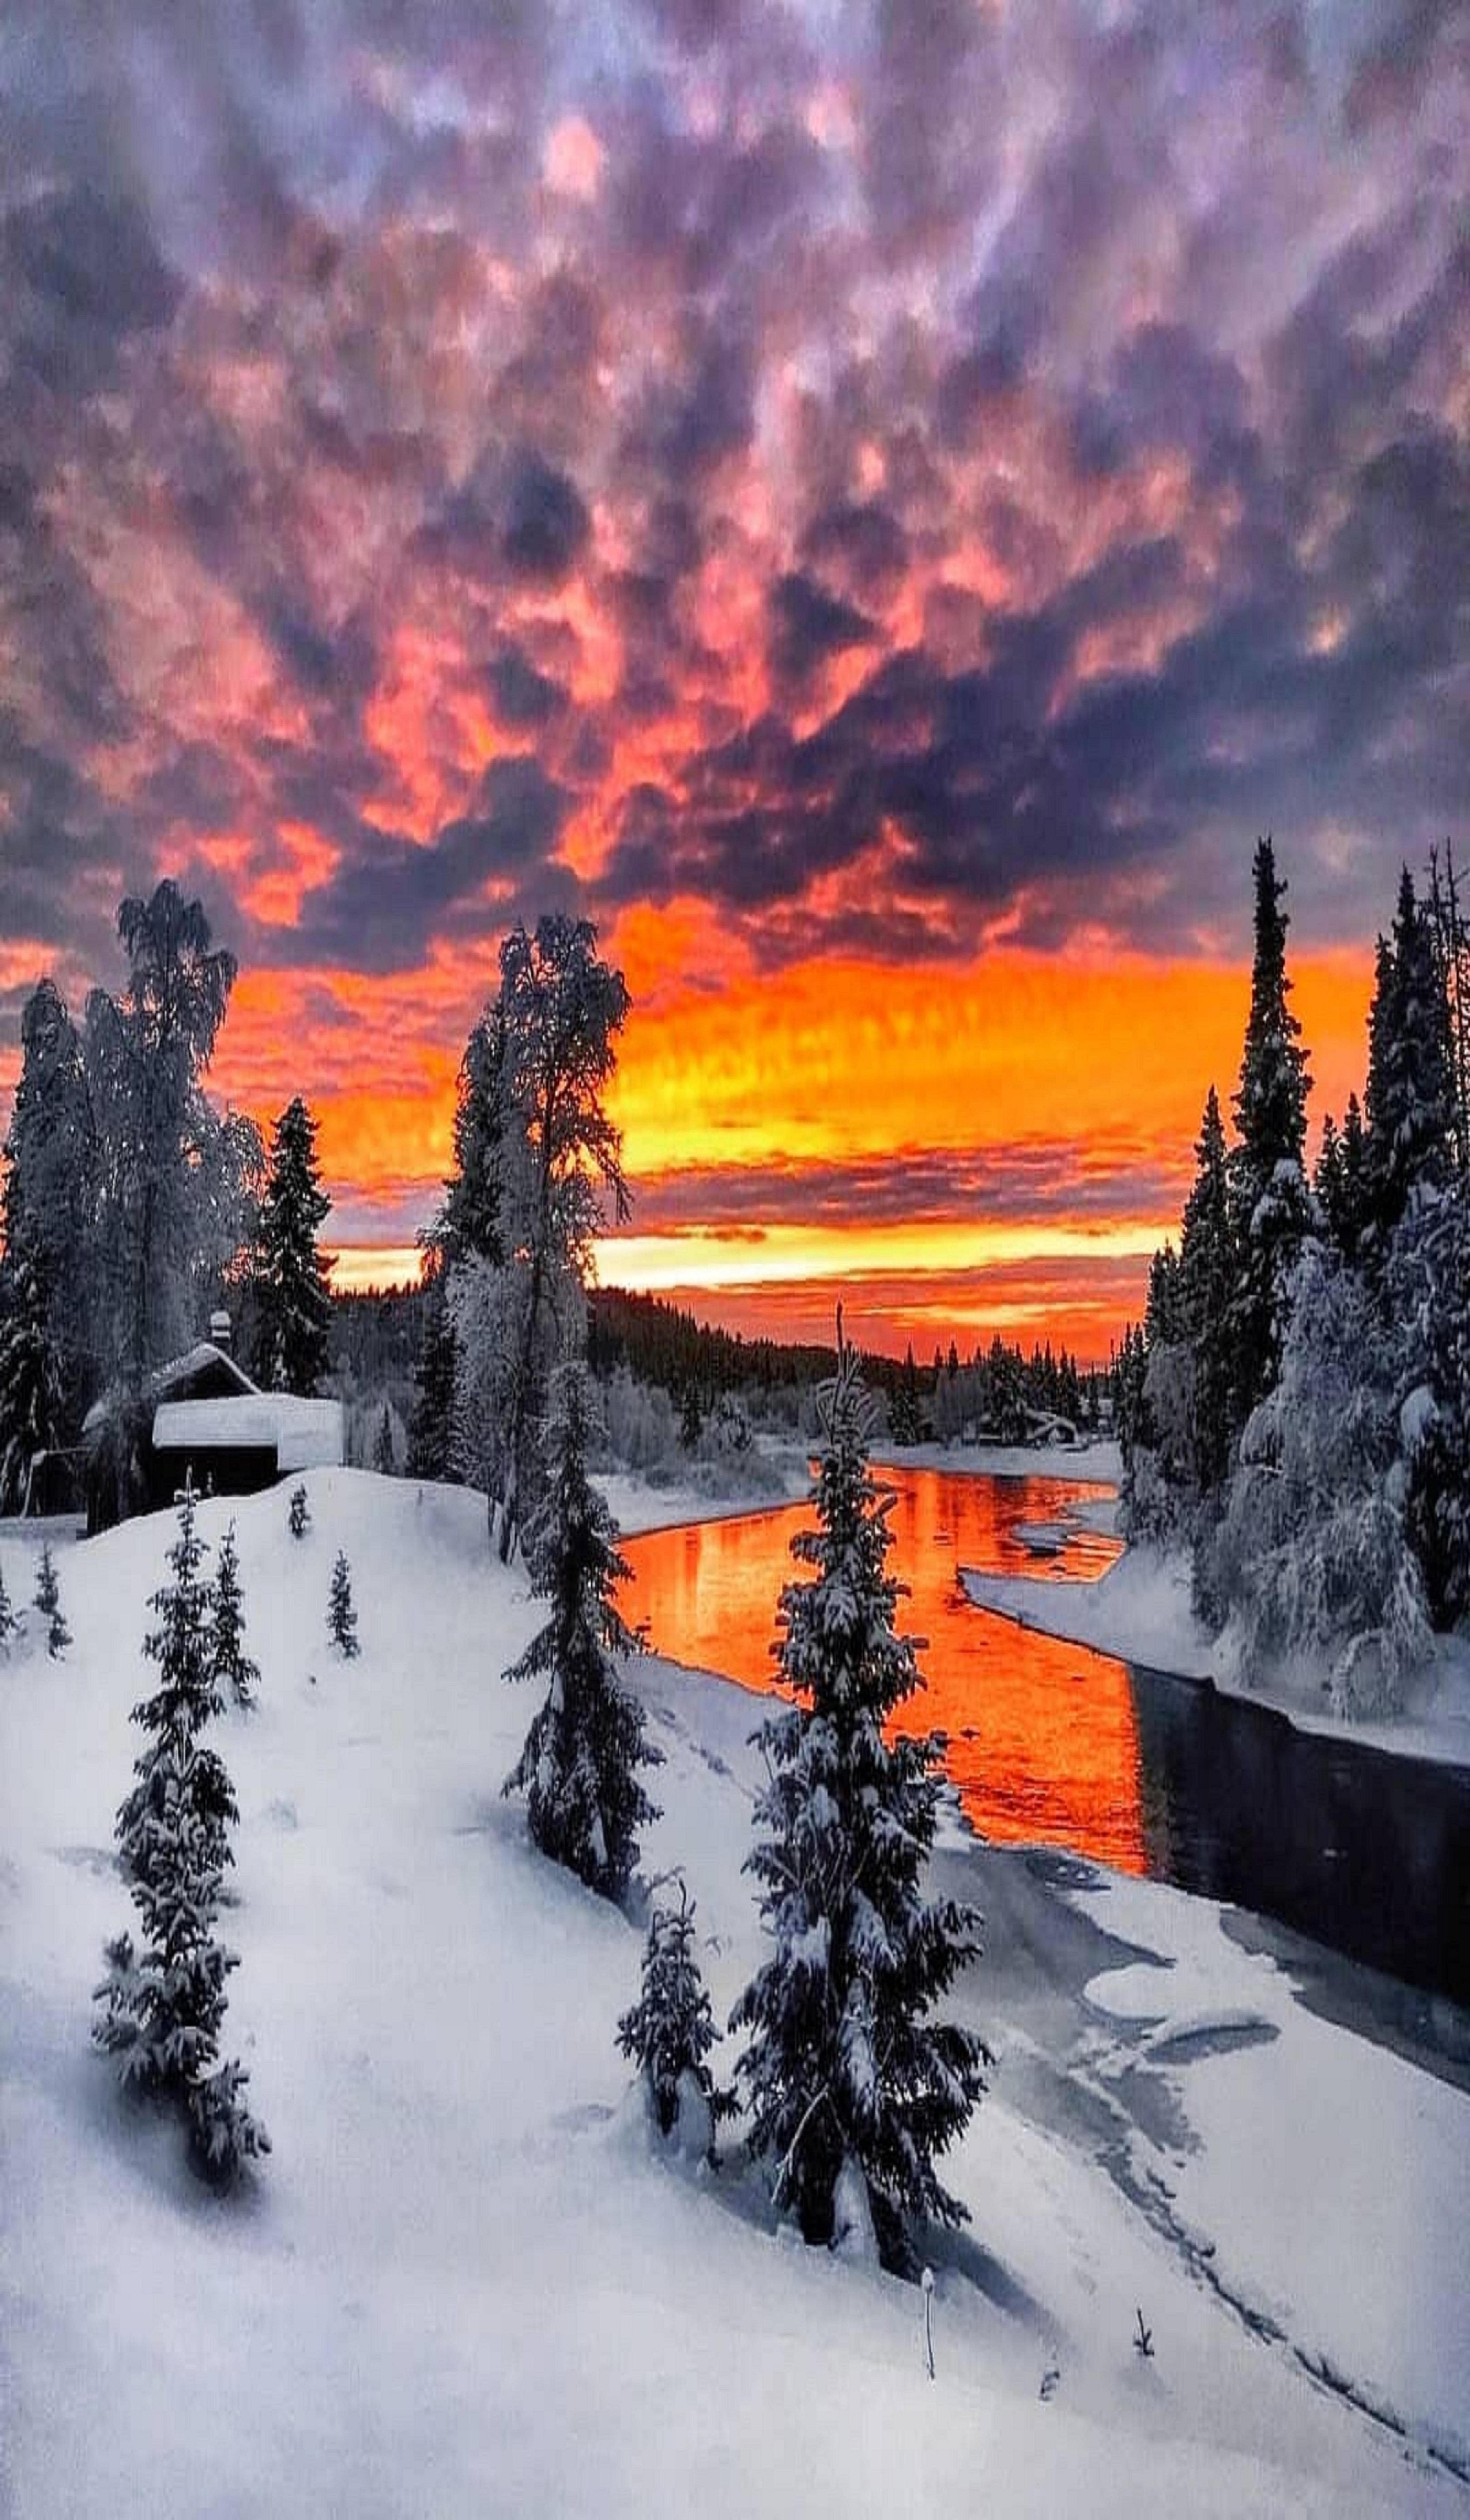 Pin By Author Sharon Gerlach On Sunset Winter Scenery Winter Pictures Winter Landscape